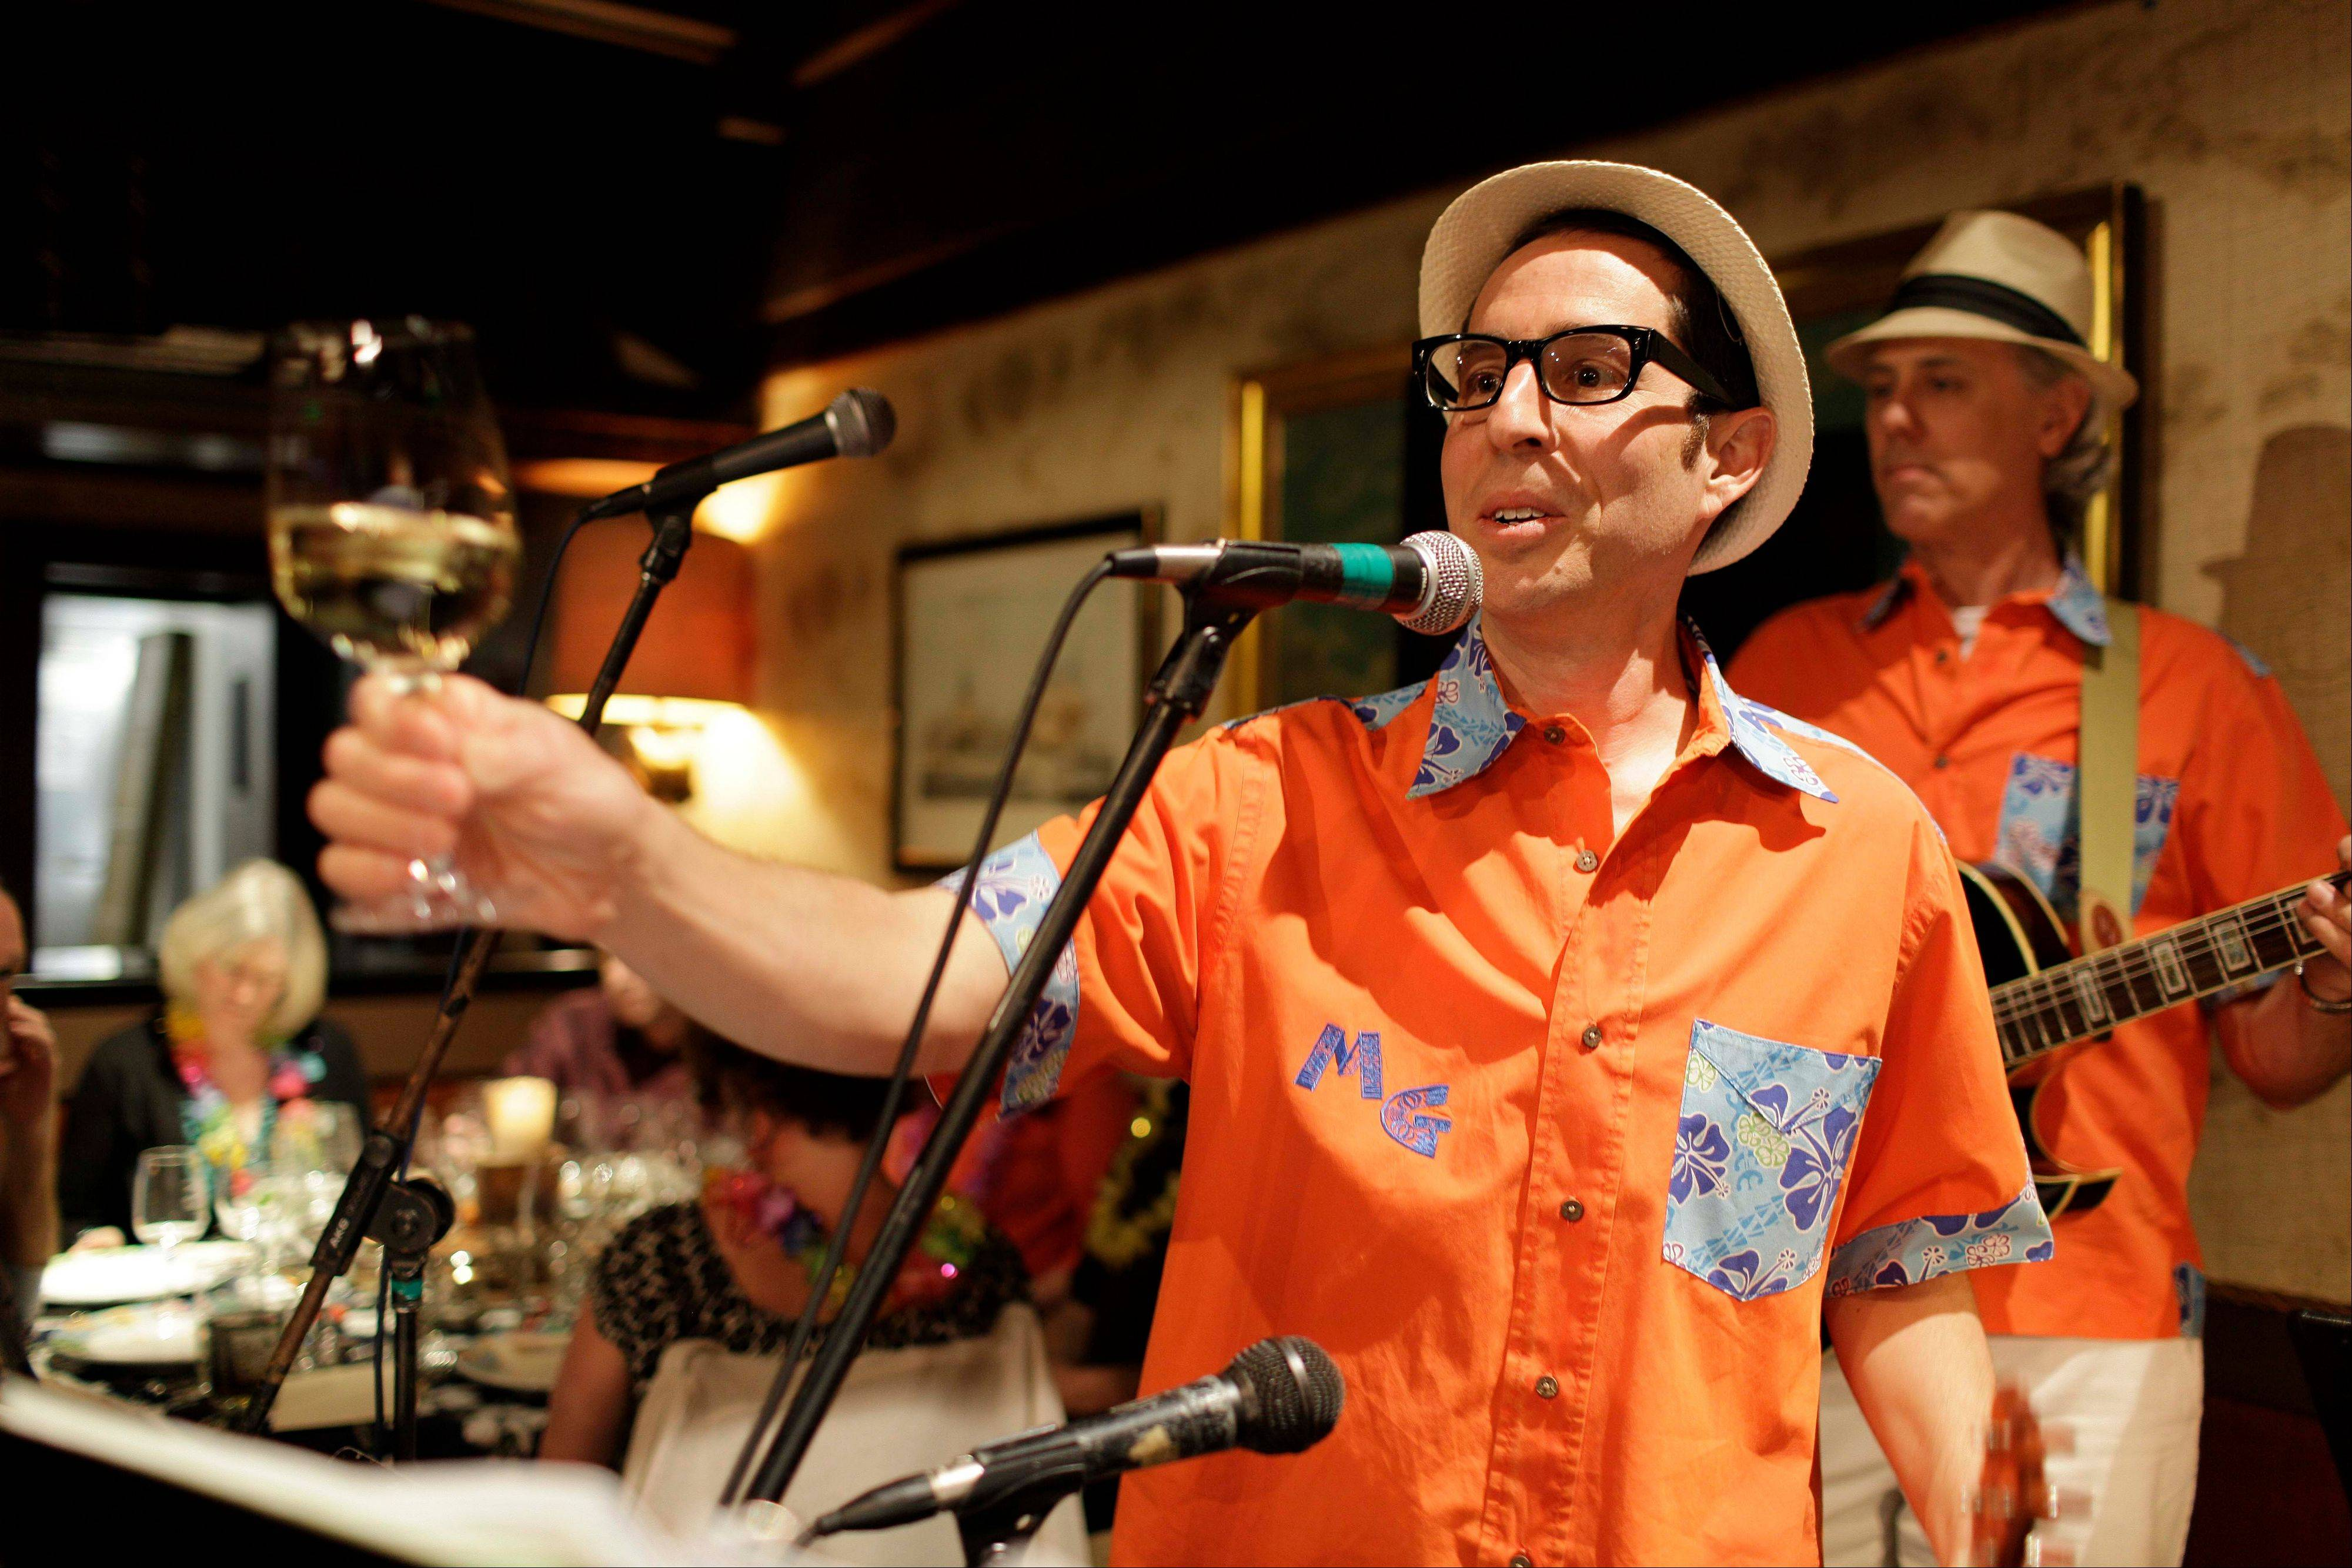 Winemaker Judd Finkelstein of Judd's Hill winery, makes a toast before playing his ukulele with his band during a winery luau at Trader Vic's restaurant in Emeryville, Calif.